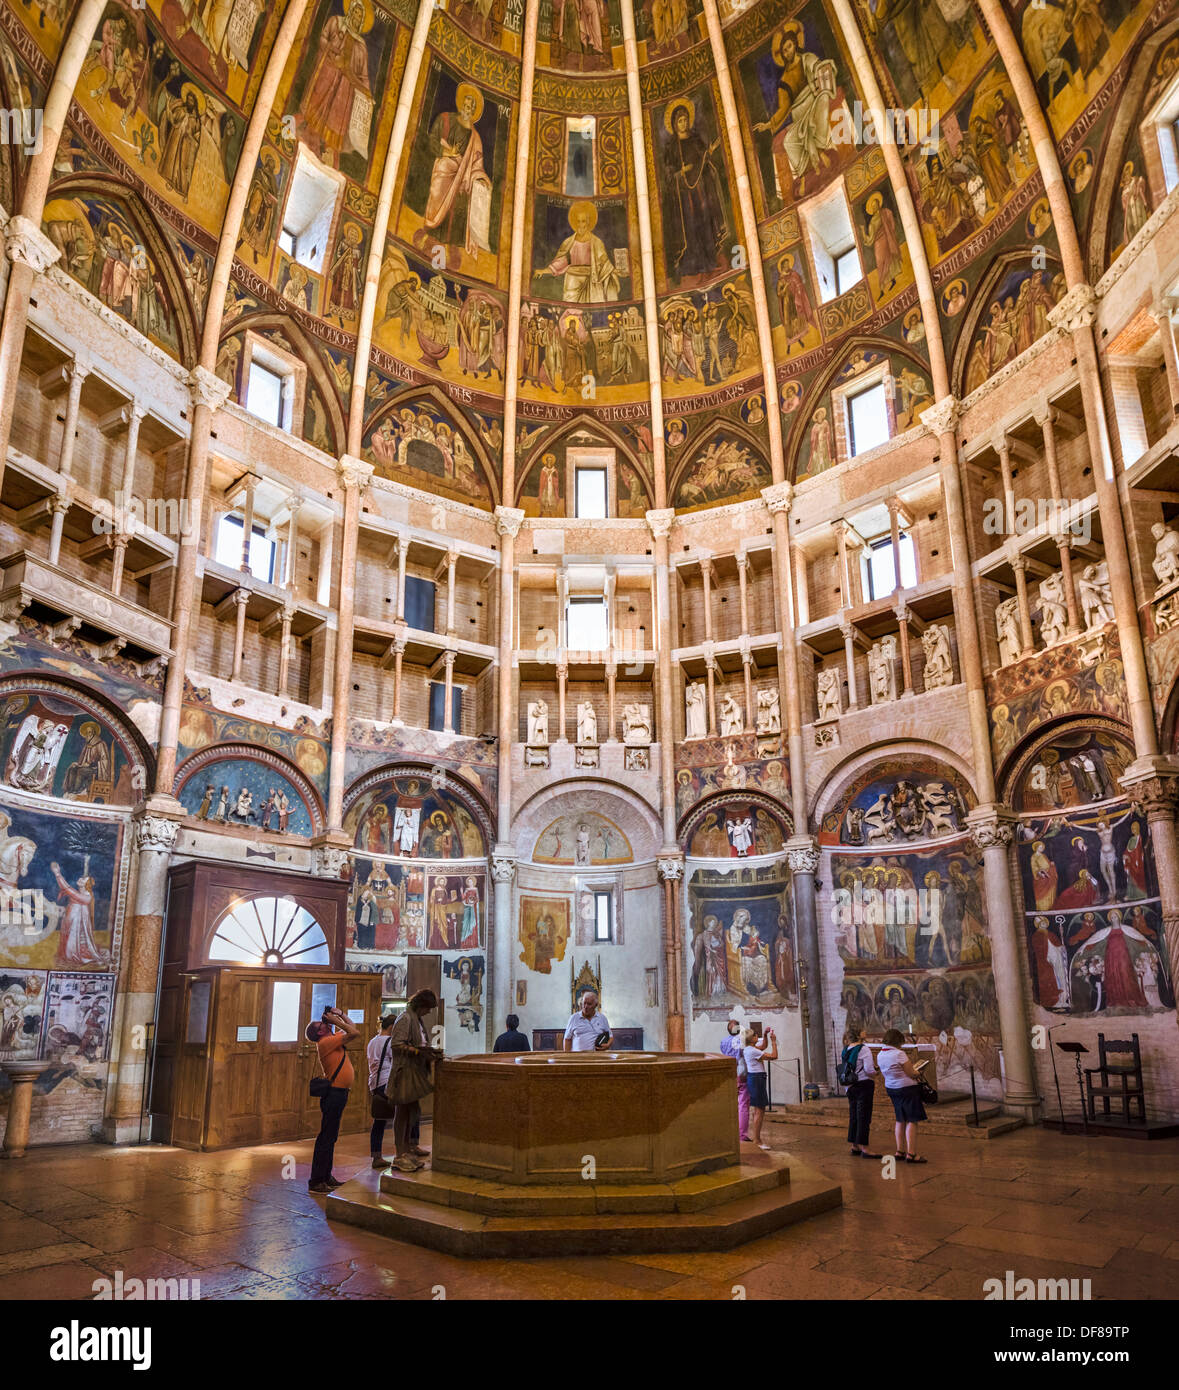 Tourists inside the historic medieval Baptistery, Parma, Emilia Romagna, Italy - Stock Image